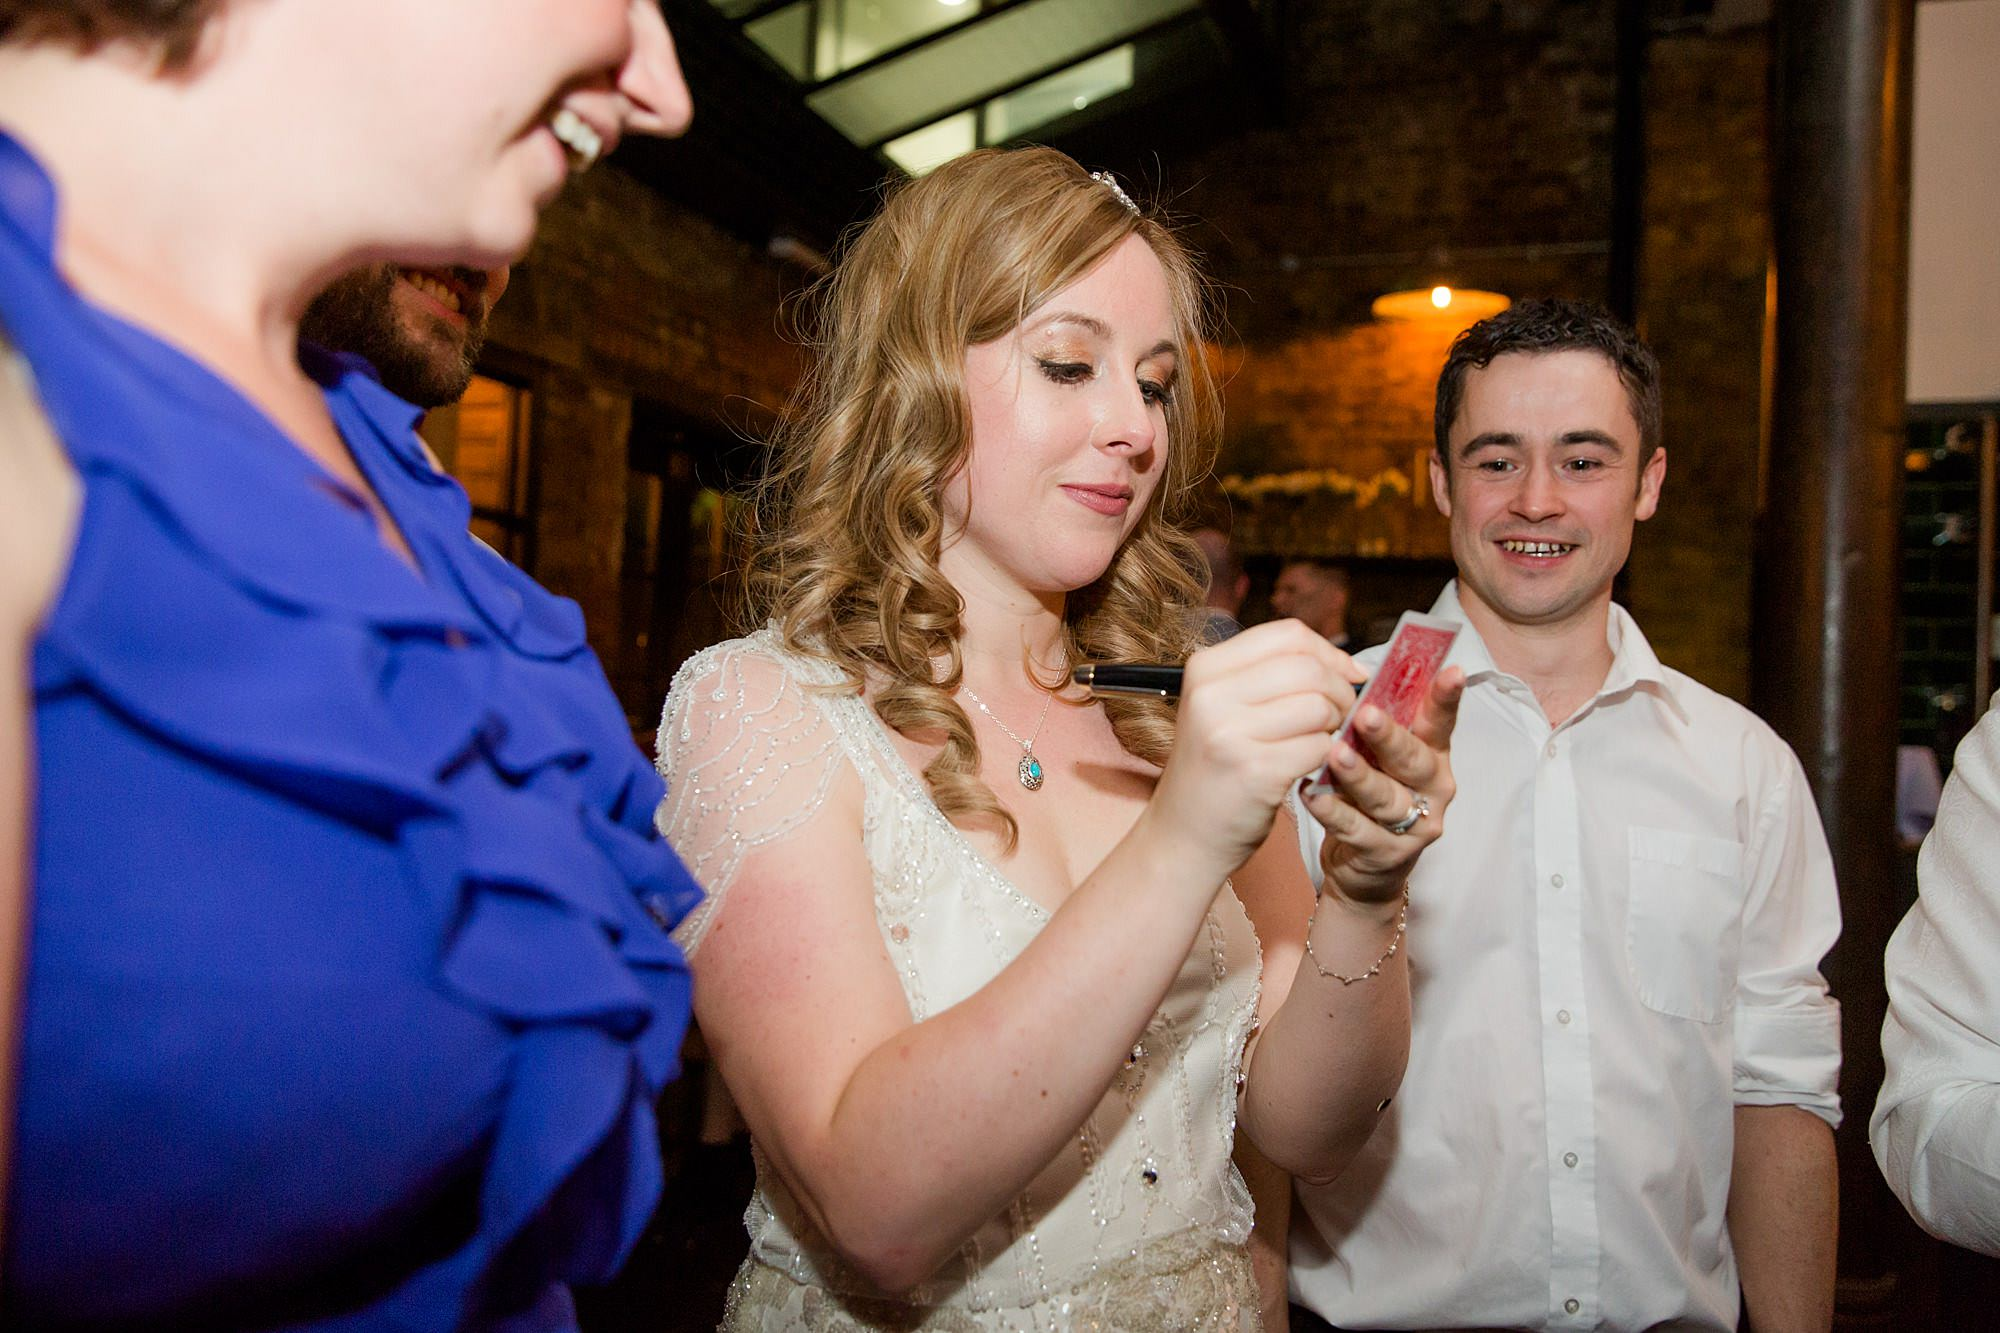 bride takes part in magic trick